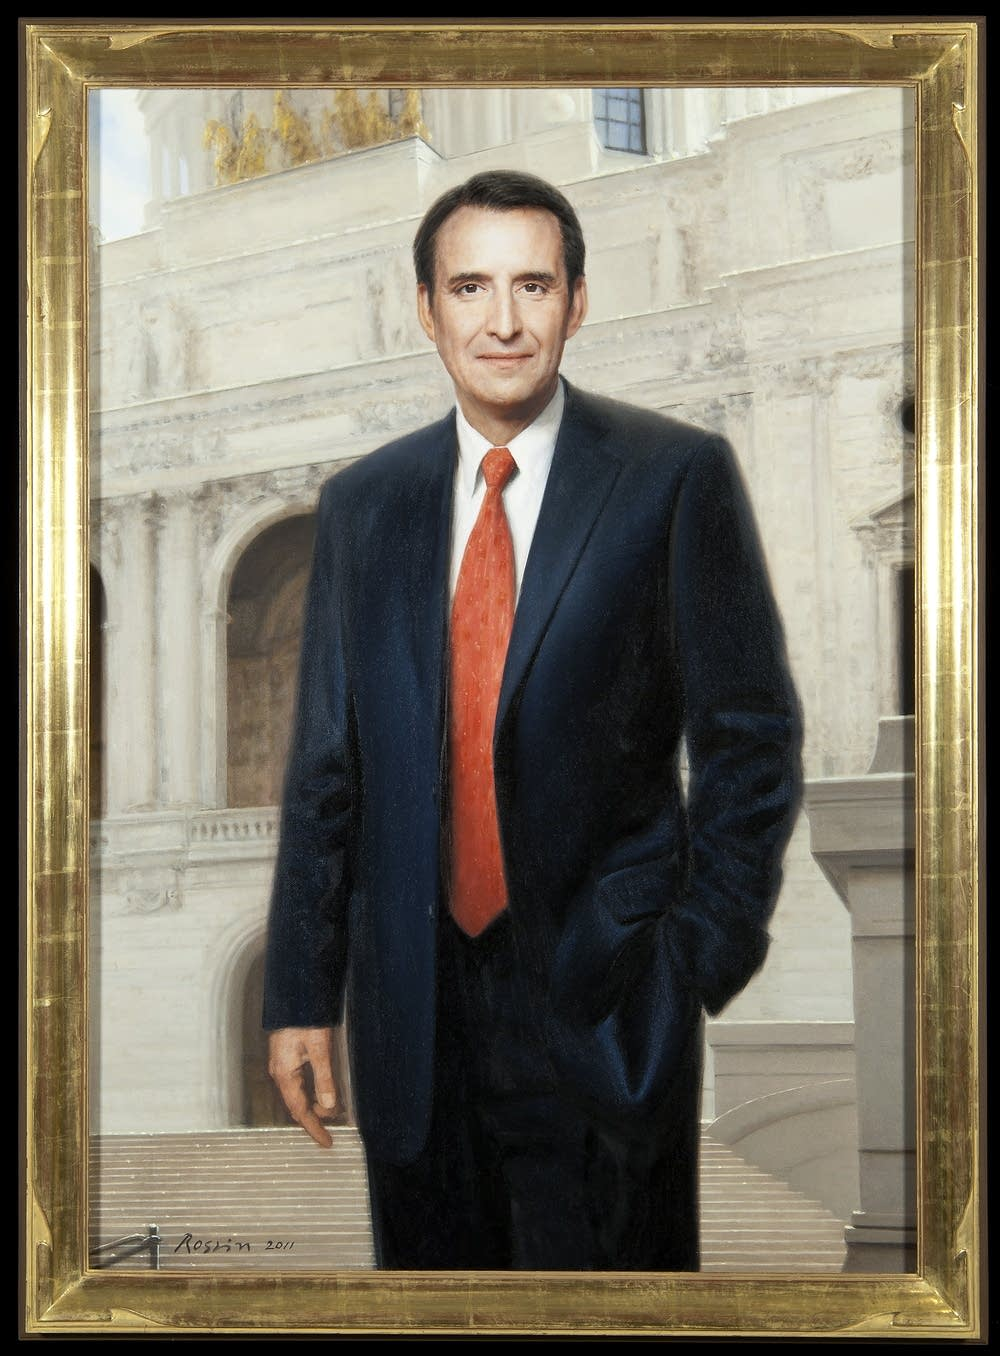 Portrait of Gov. Tim Pawlenty